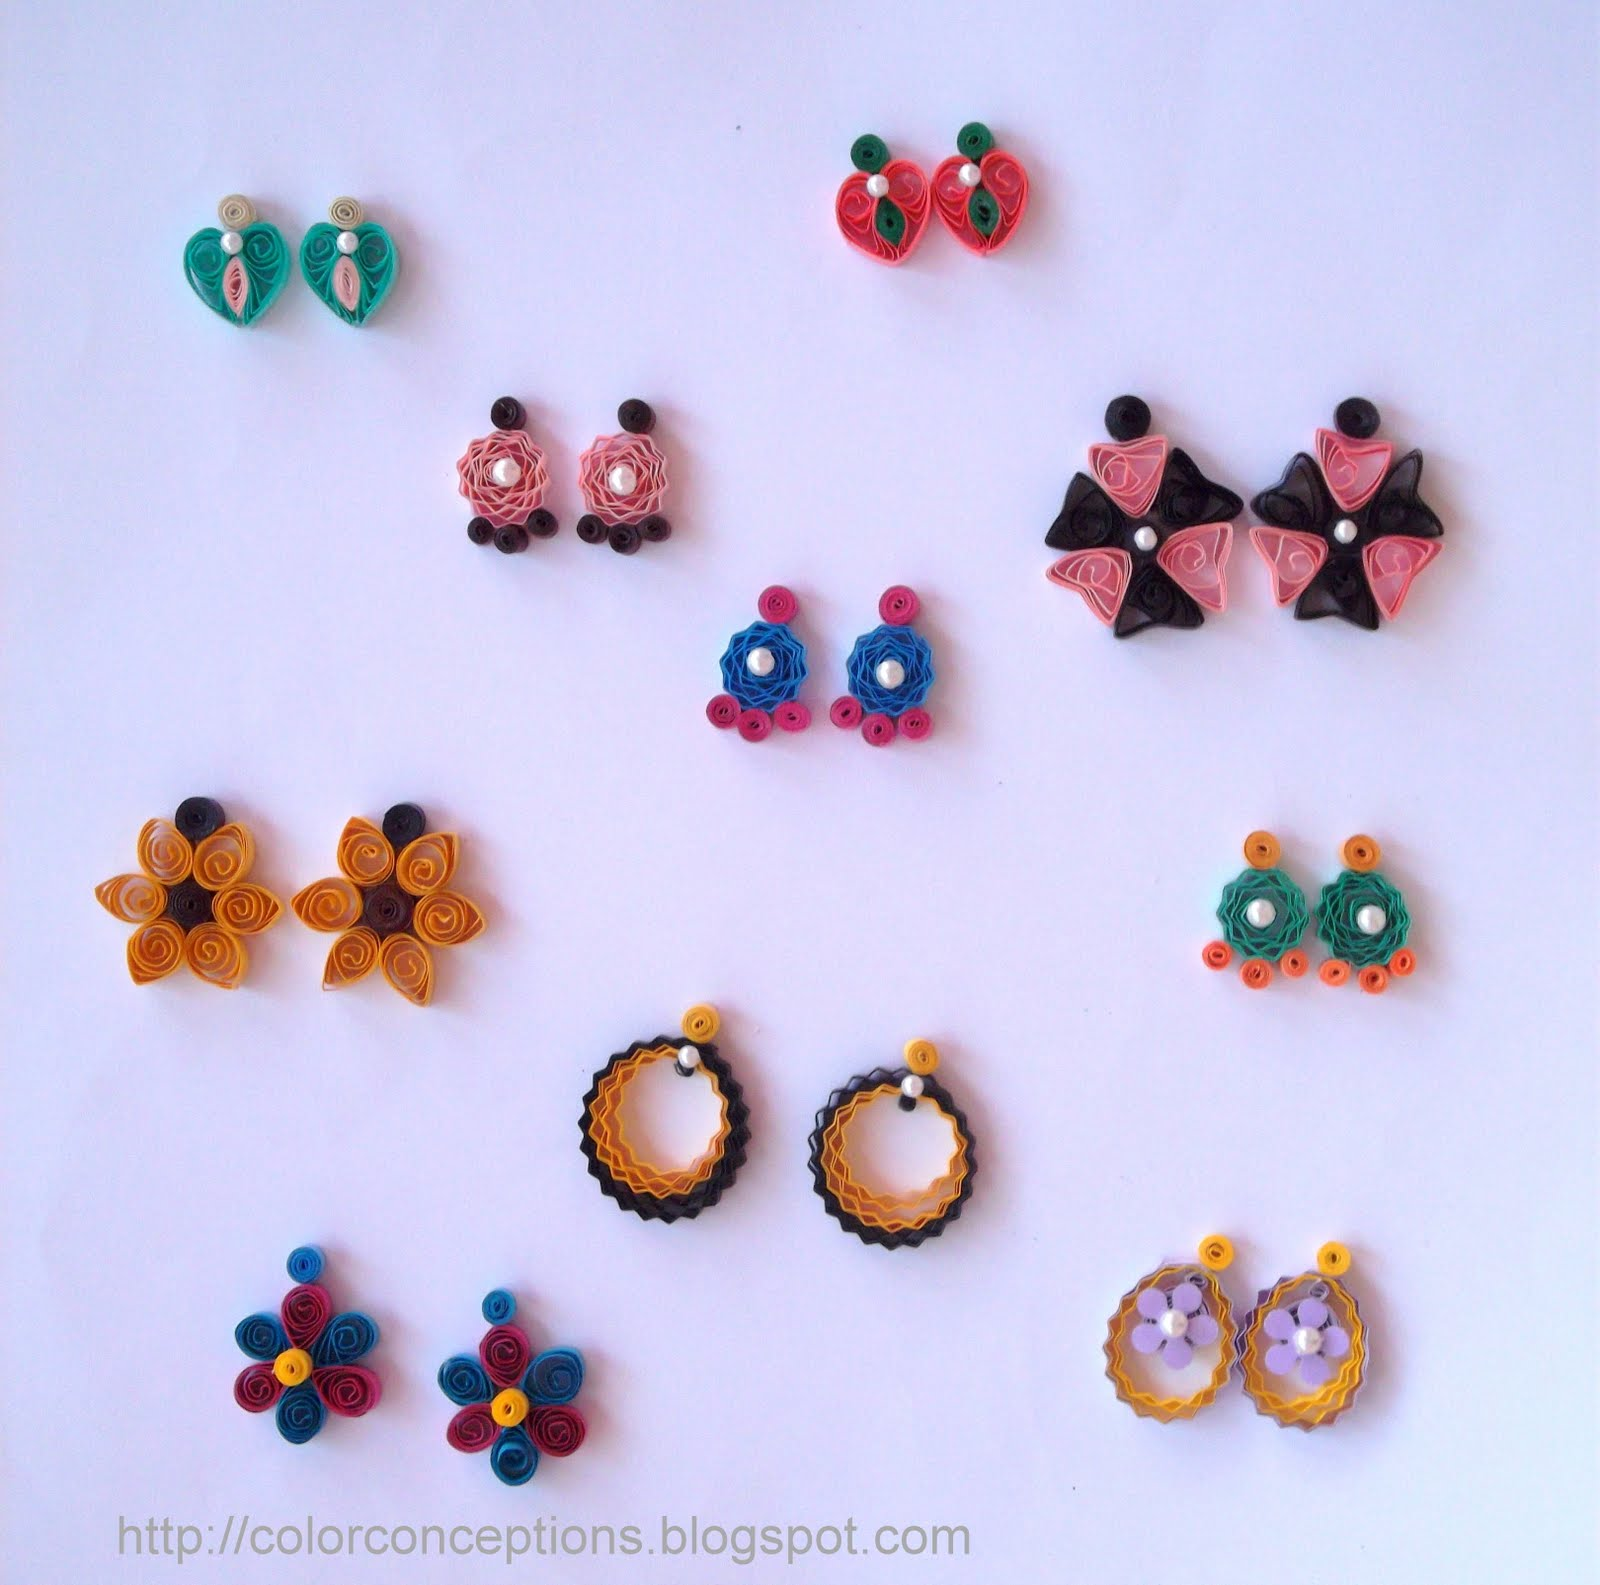 Color Conceptions: Quilled earrings